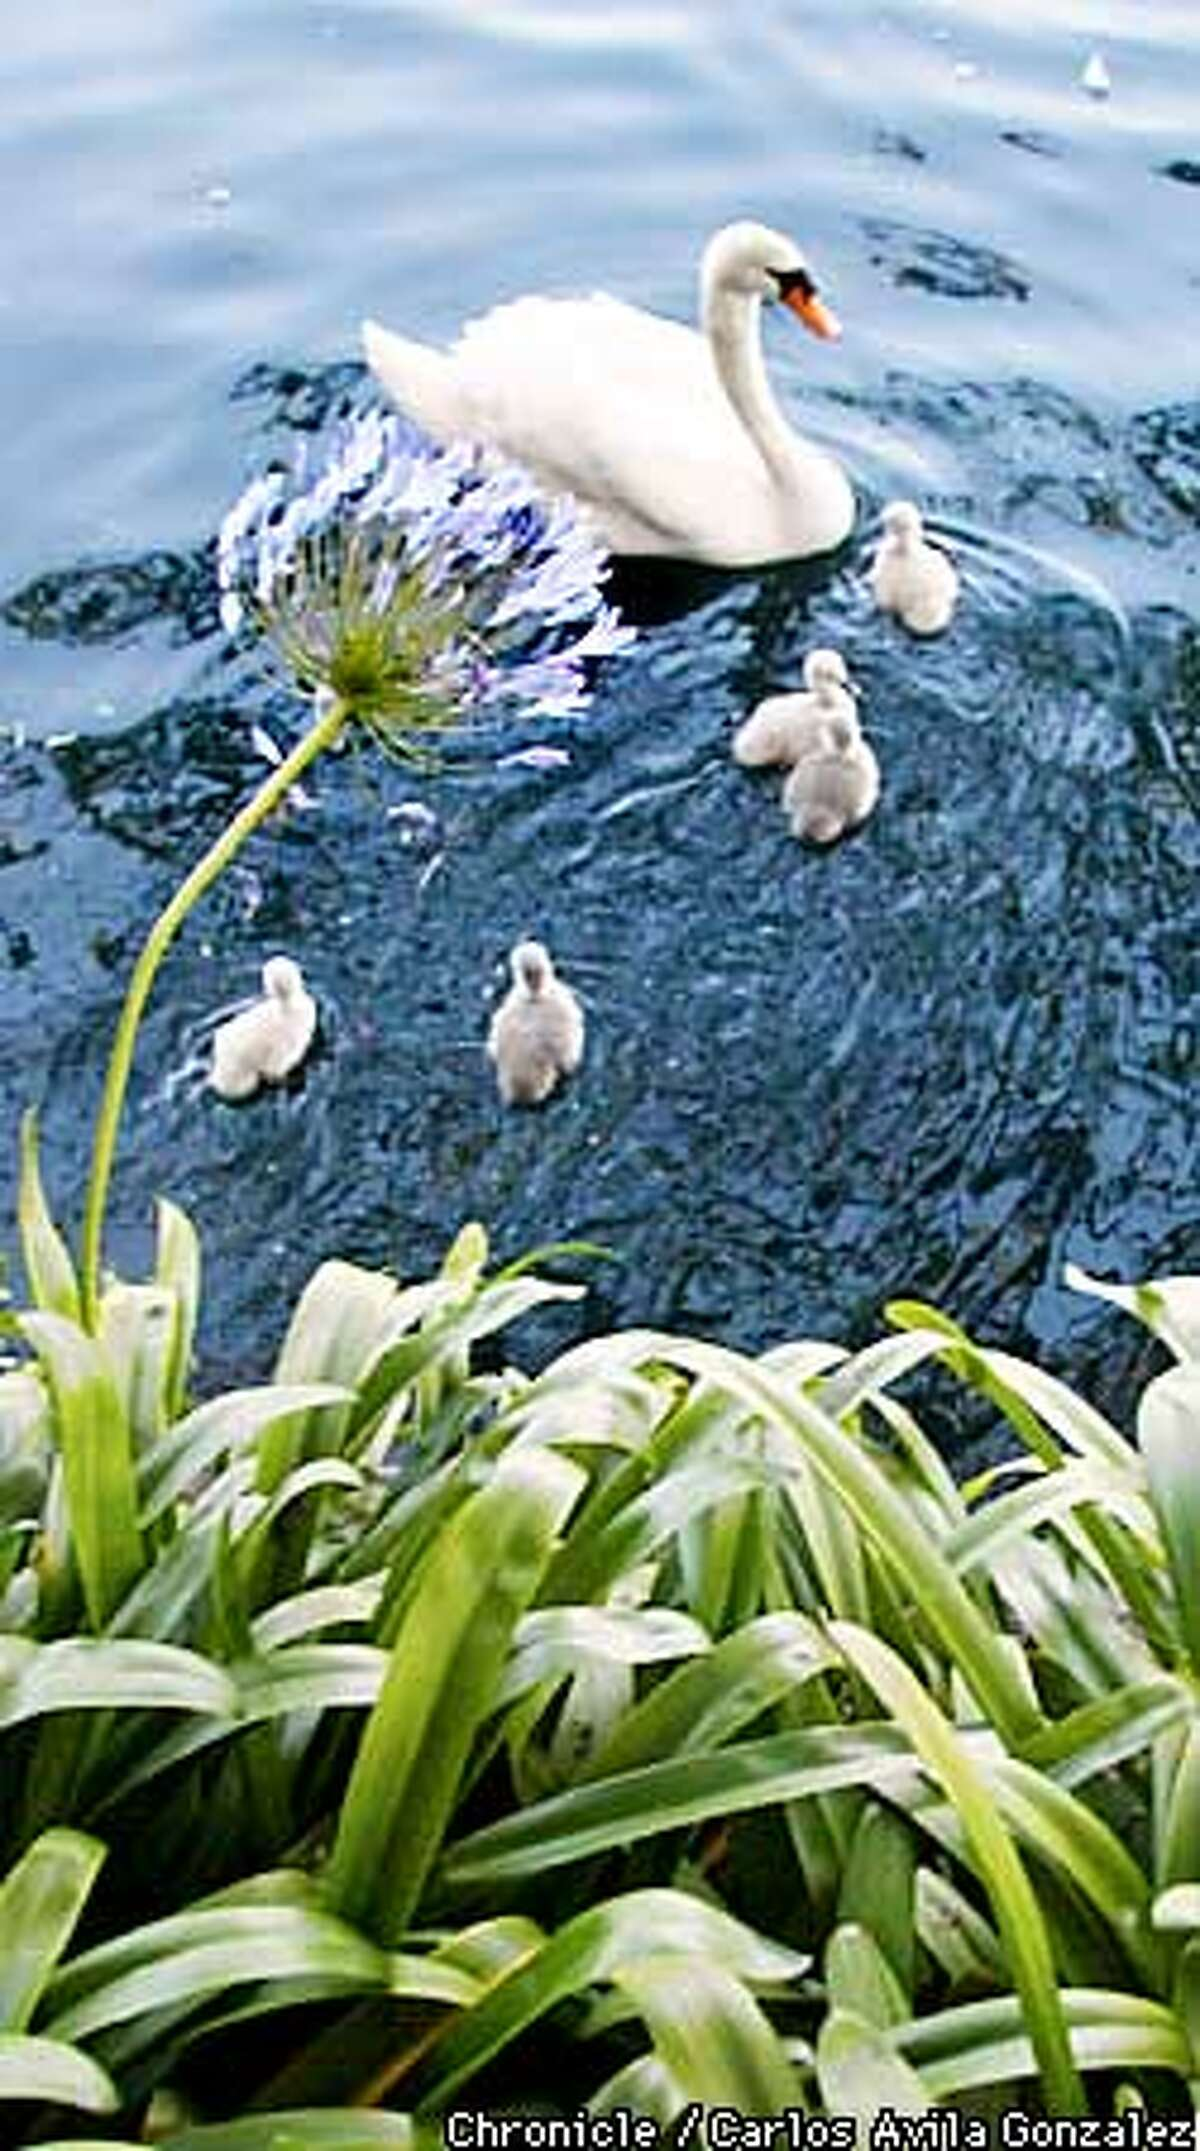 Friday, a Cygnet Swan, at the Palace of Fine Arts in San Francisco, Ca., with her five baby swans on Monday, May 6, 2002. (CARLOS AVILA GONZALEZ/SAN FRANCISCO CHRONICLE)